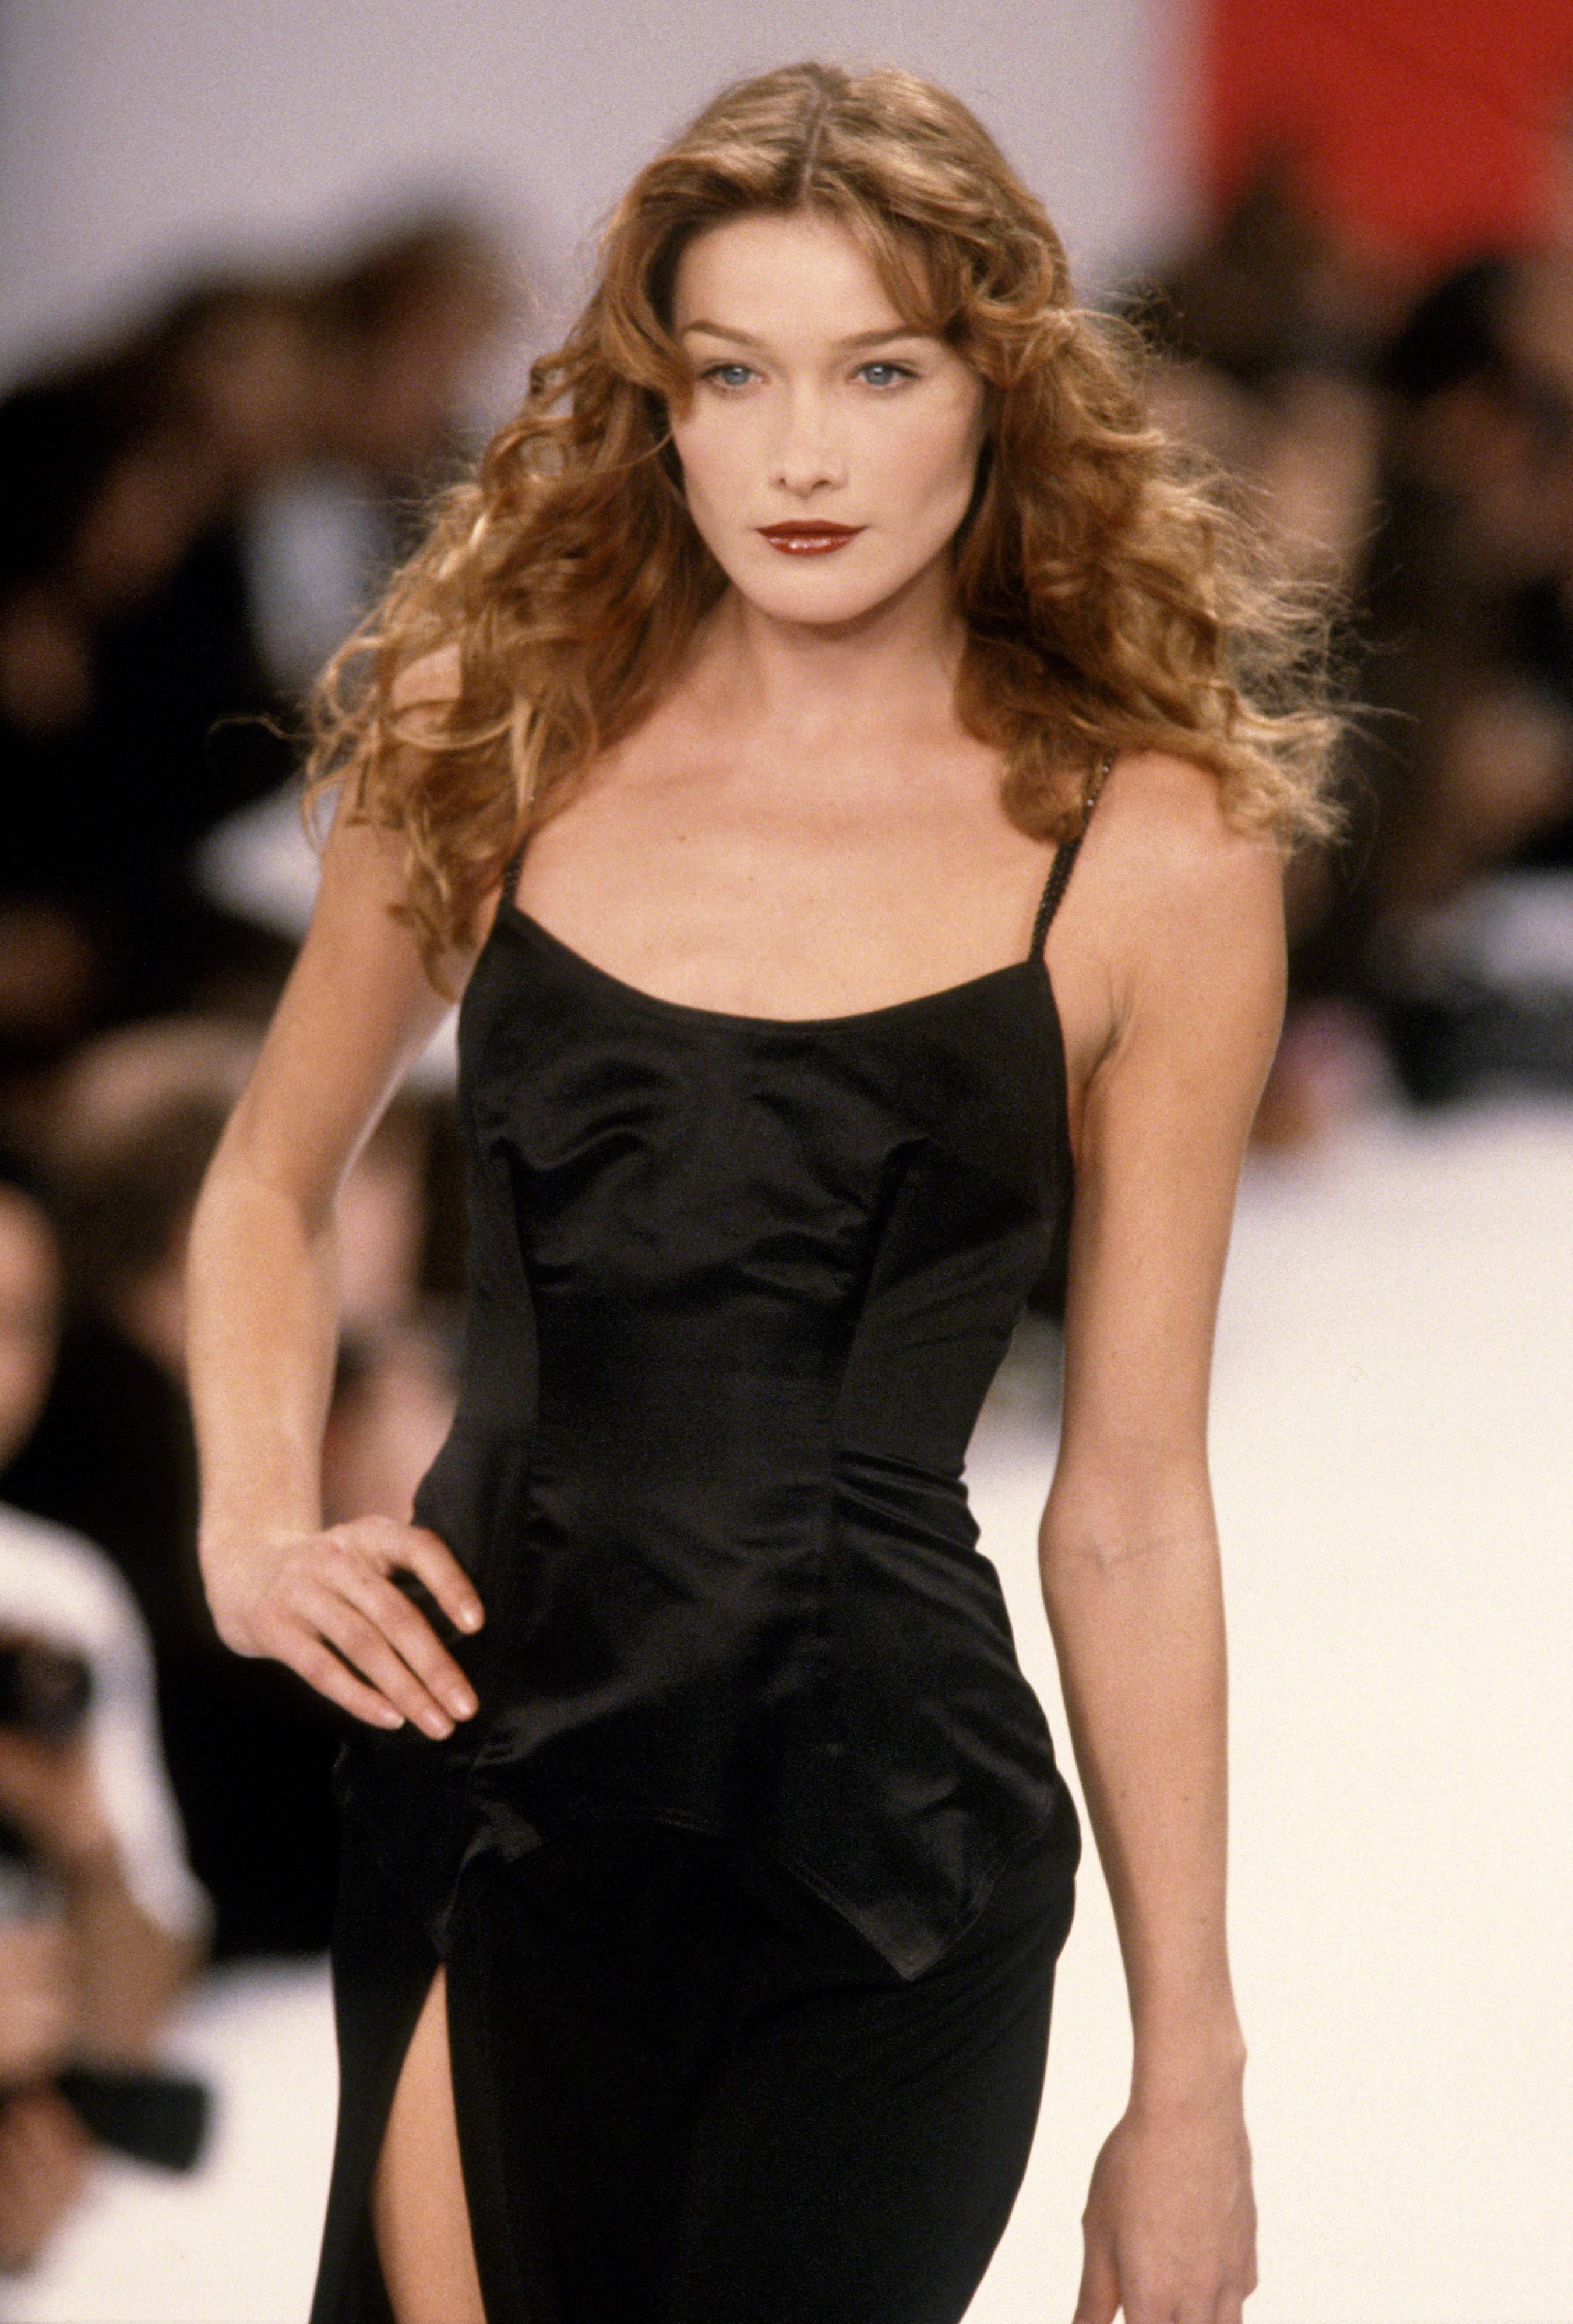 Supermodels Of The 1990s Famous 90s Models Who Ruled The Runways